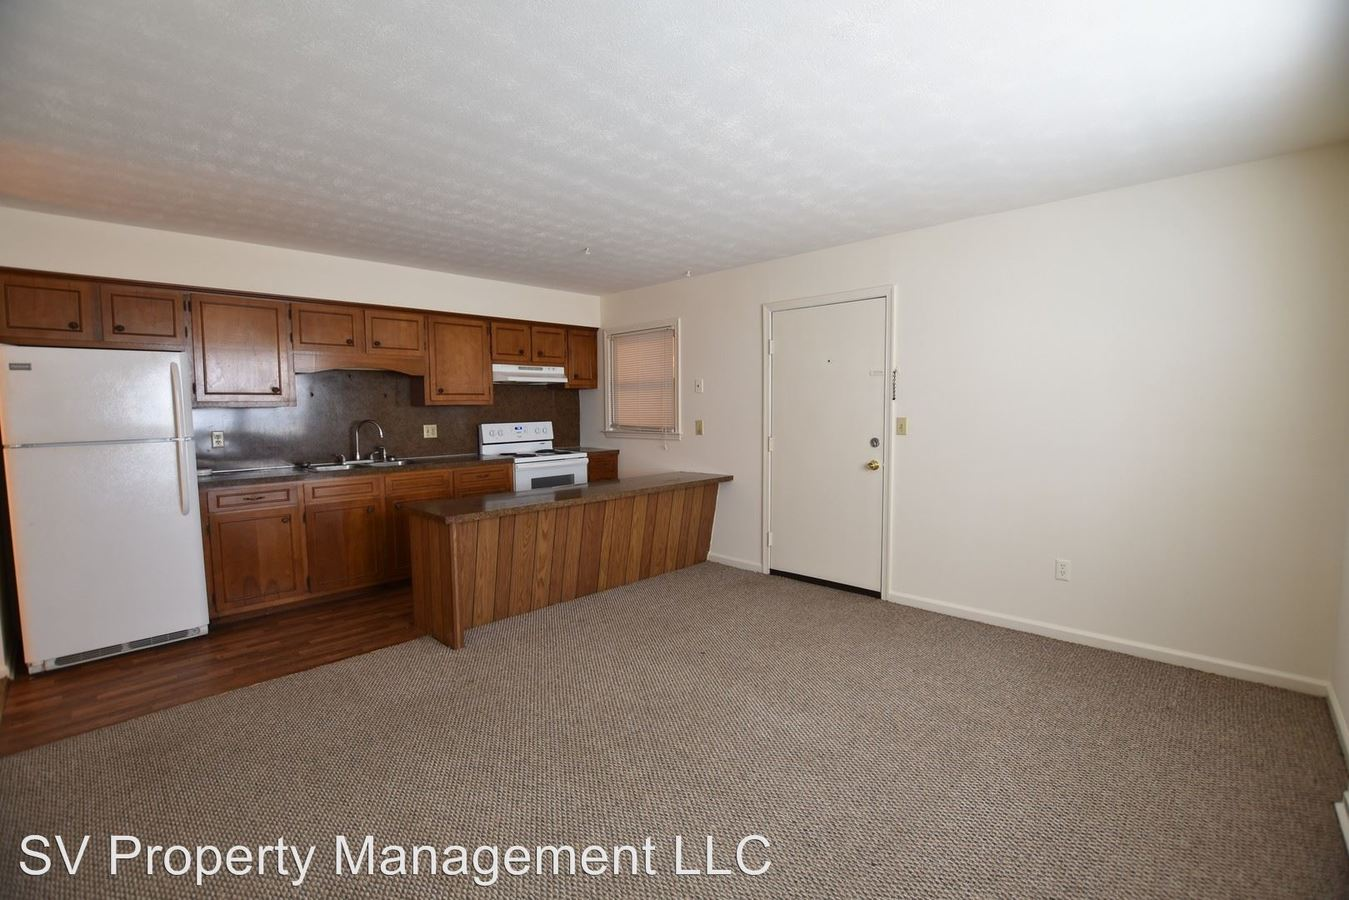 1 Bedroom 1 Bathroom Apartment for rent at 50 And 62 Woodlee Rd in Staunton, VA